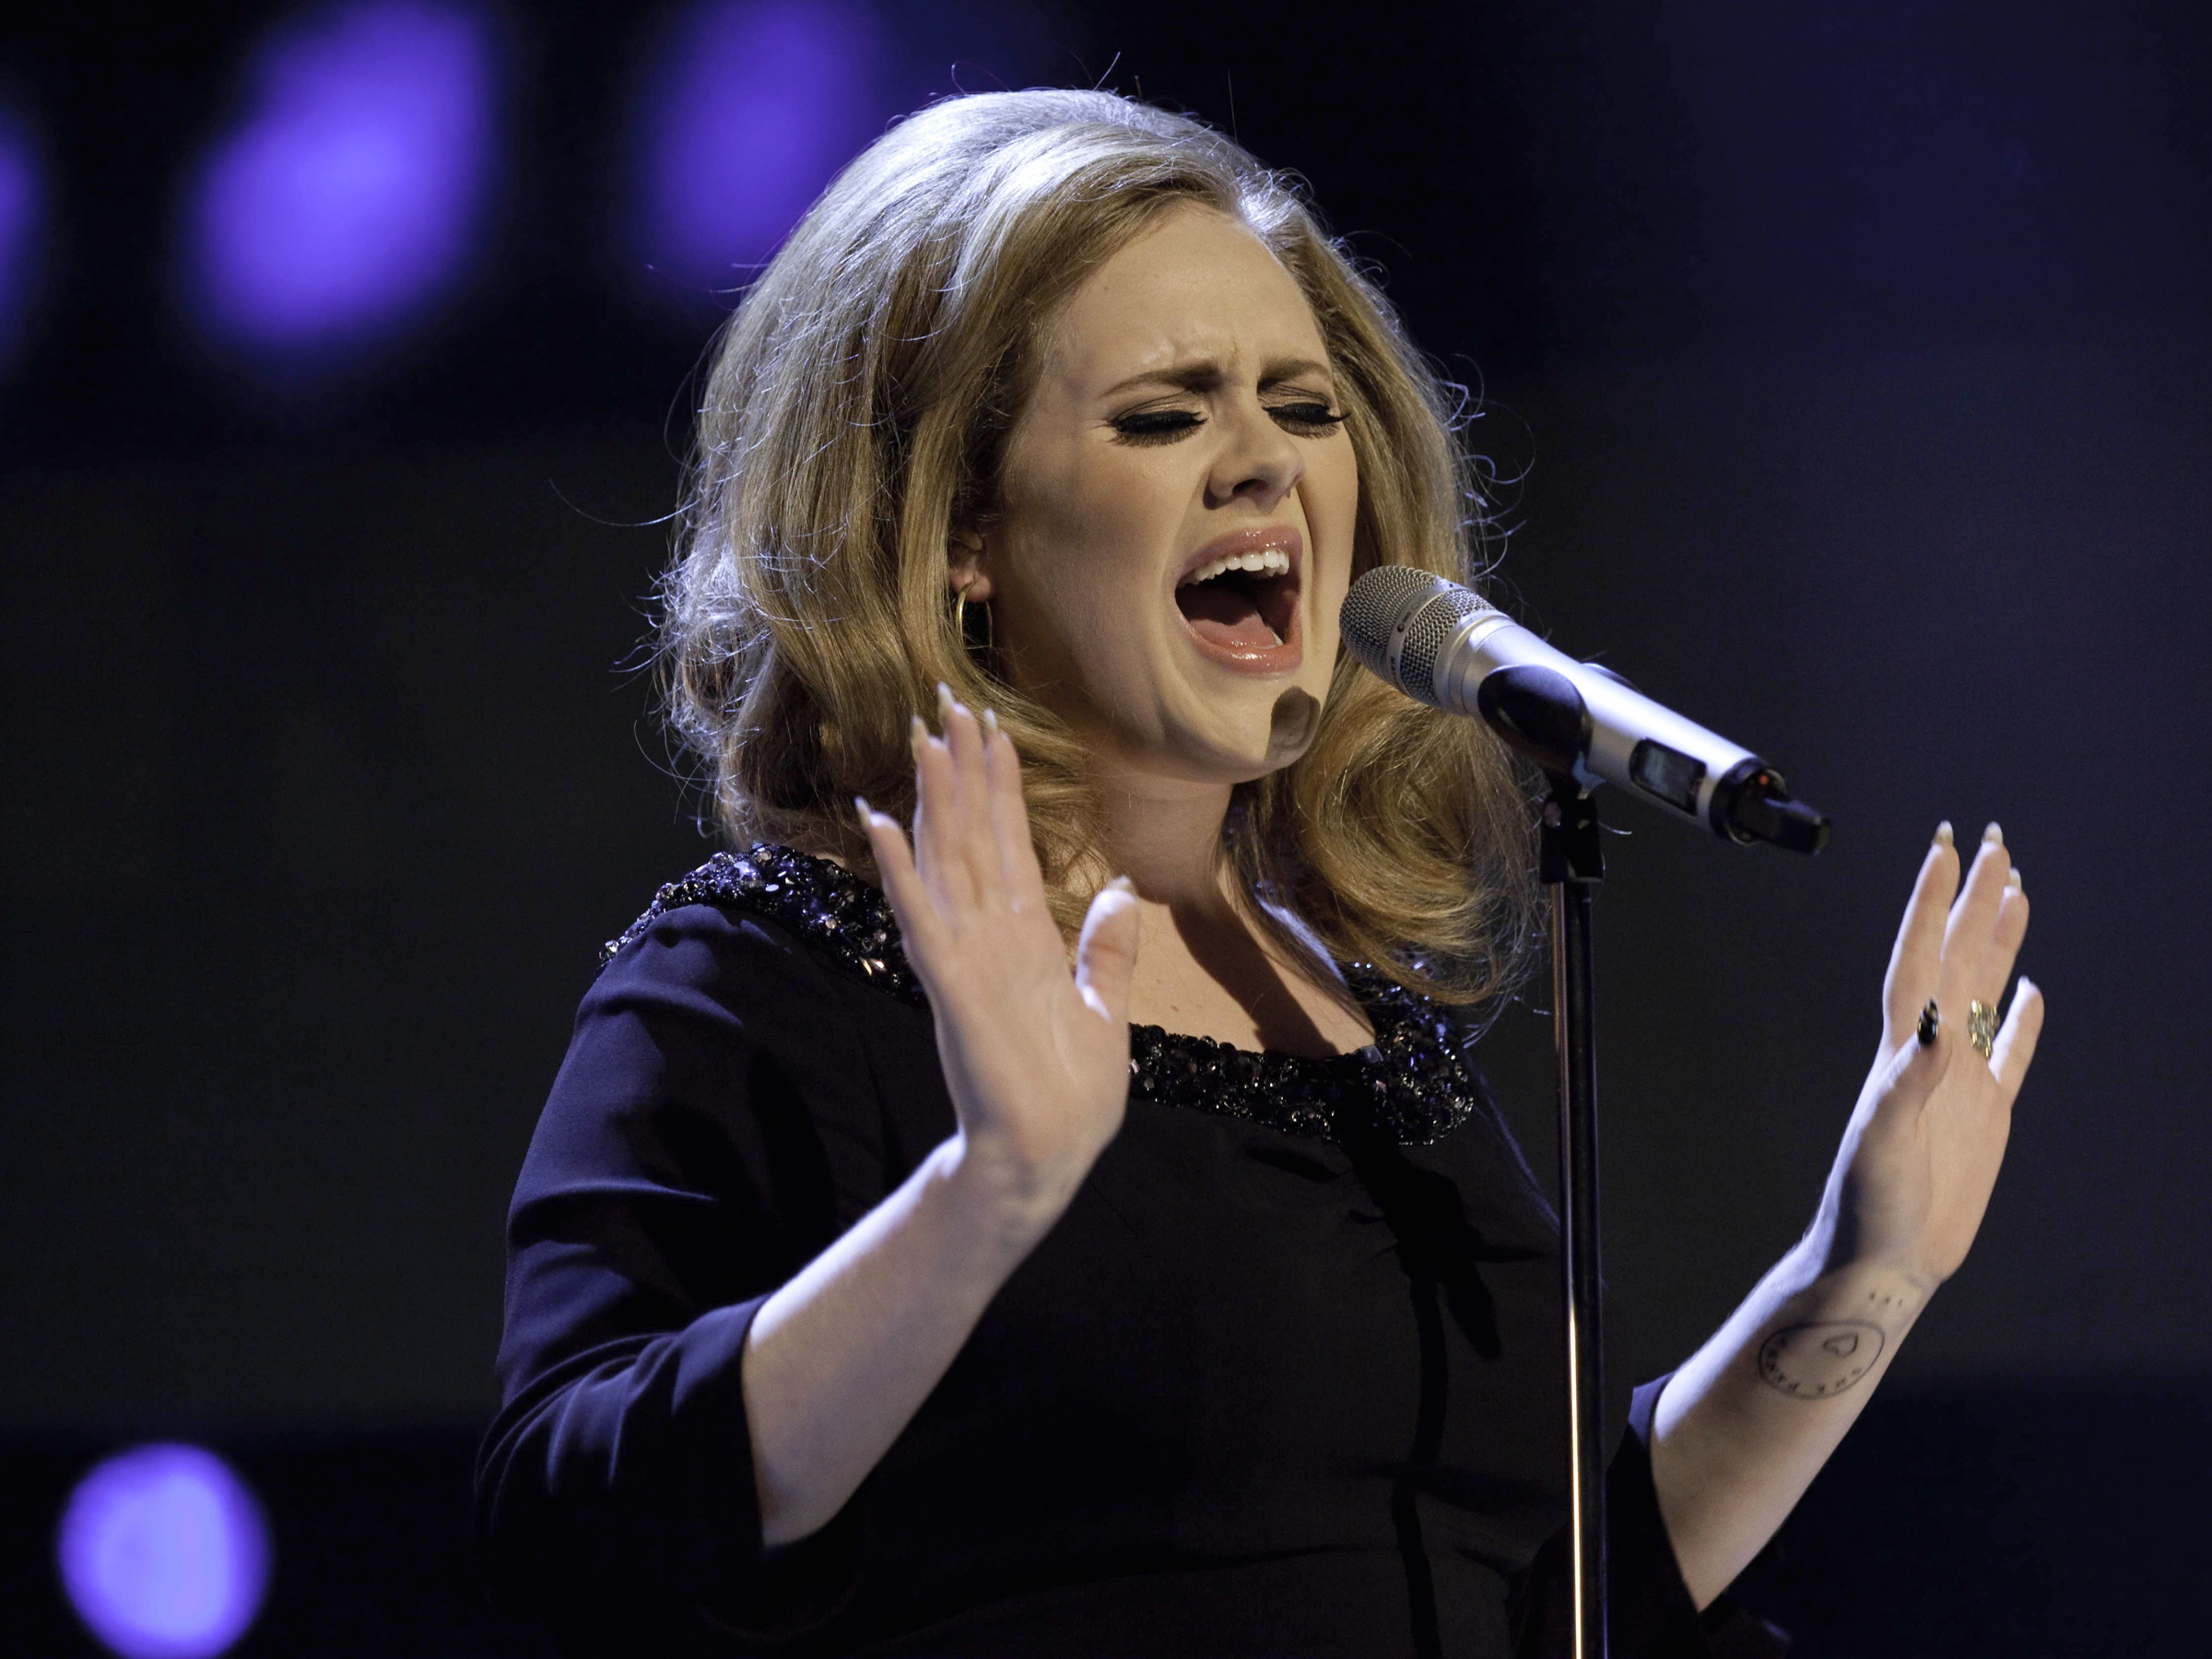 Adele Previews New Song 'Easy on Me' Ahead of Single's Release - Rolling Stone